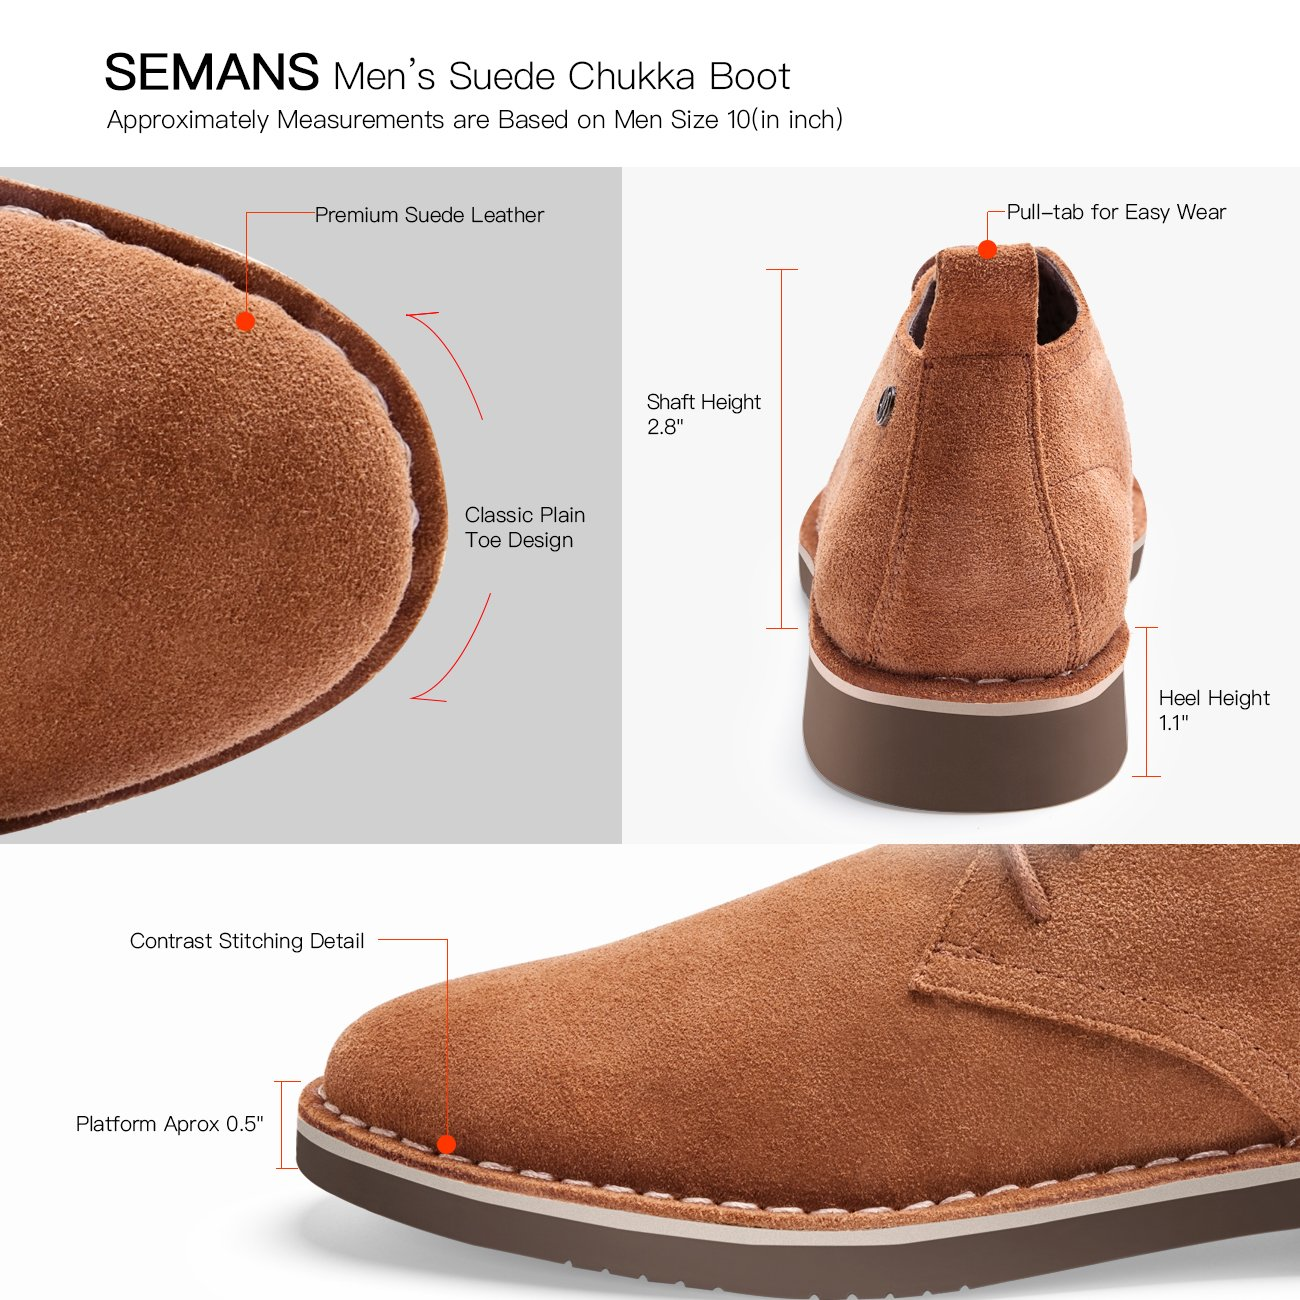 SEMANS Men's Suede Chukka Boot Casual Lace up Desert Boot Ankle Shoes Stylish Fashion Fit Comfortable Leather Shoes Brown 9.5 D (M) US